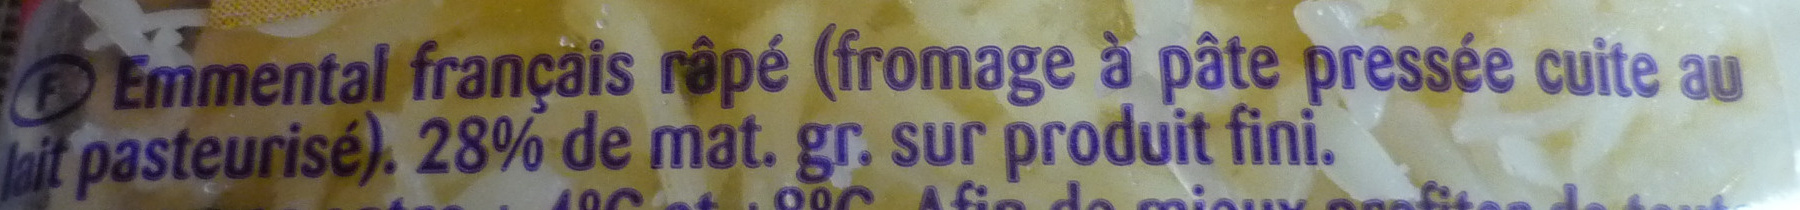 Emmental Râpé Fondant (29 % MG) - Ingredients